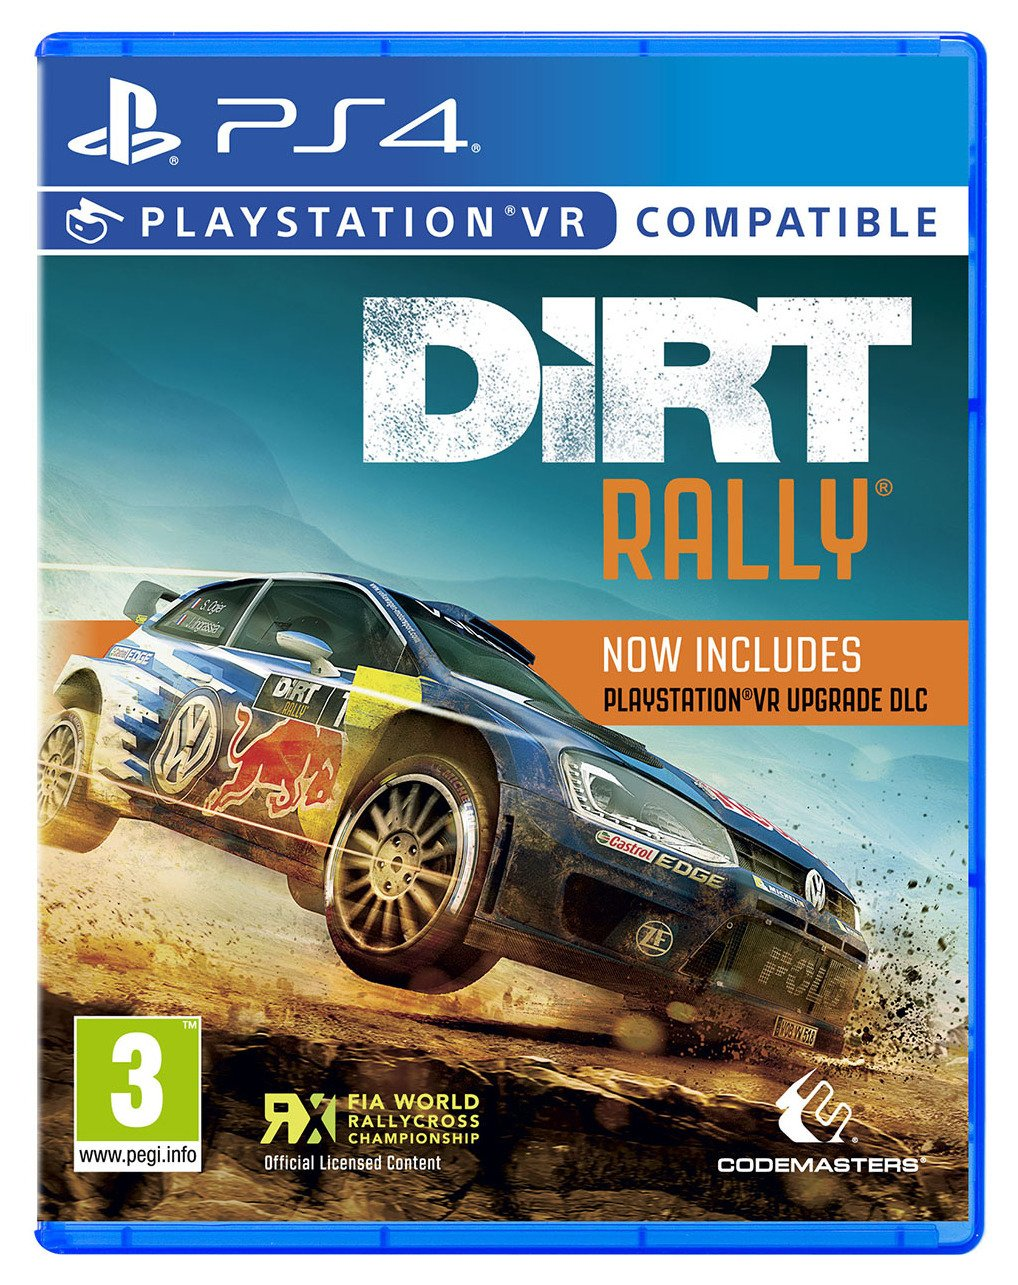 Image of Dirt Rally PS4 VR Game.